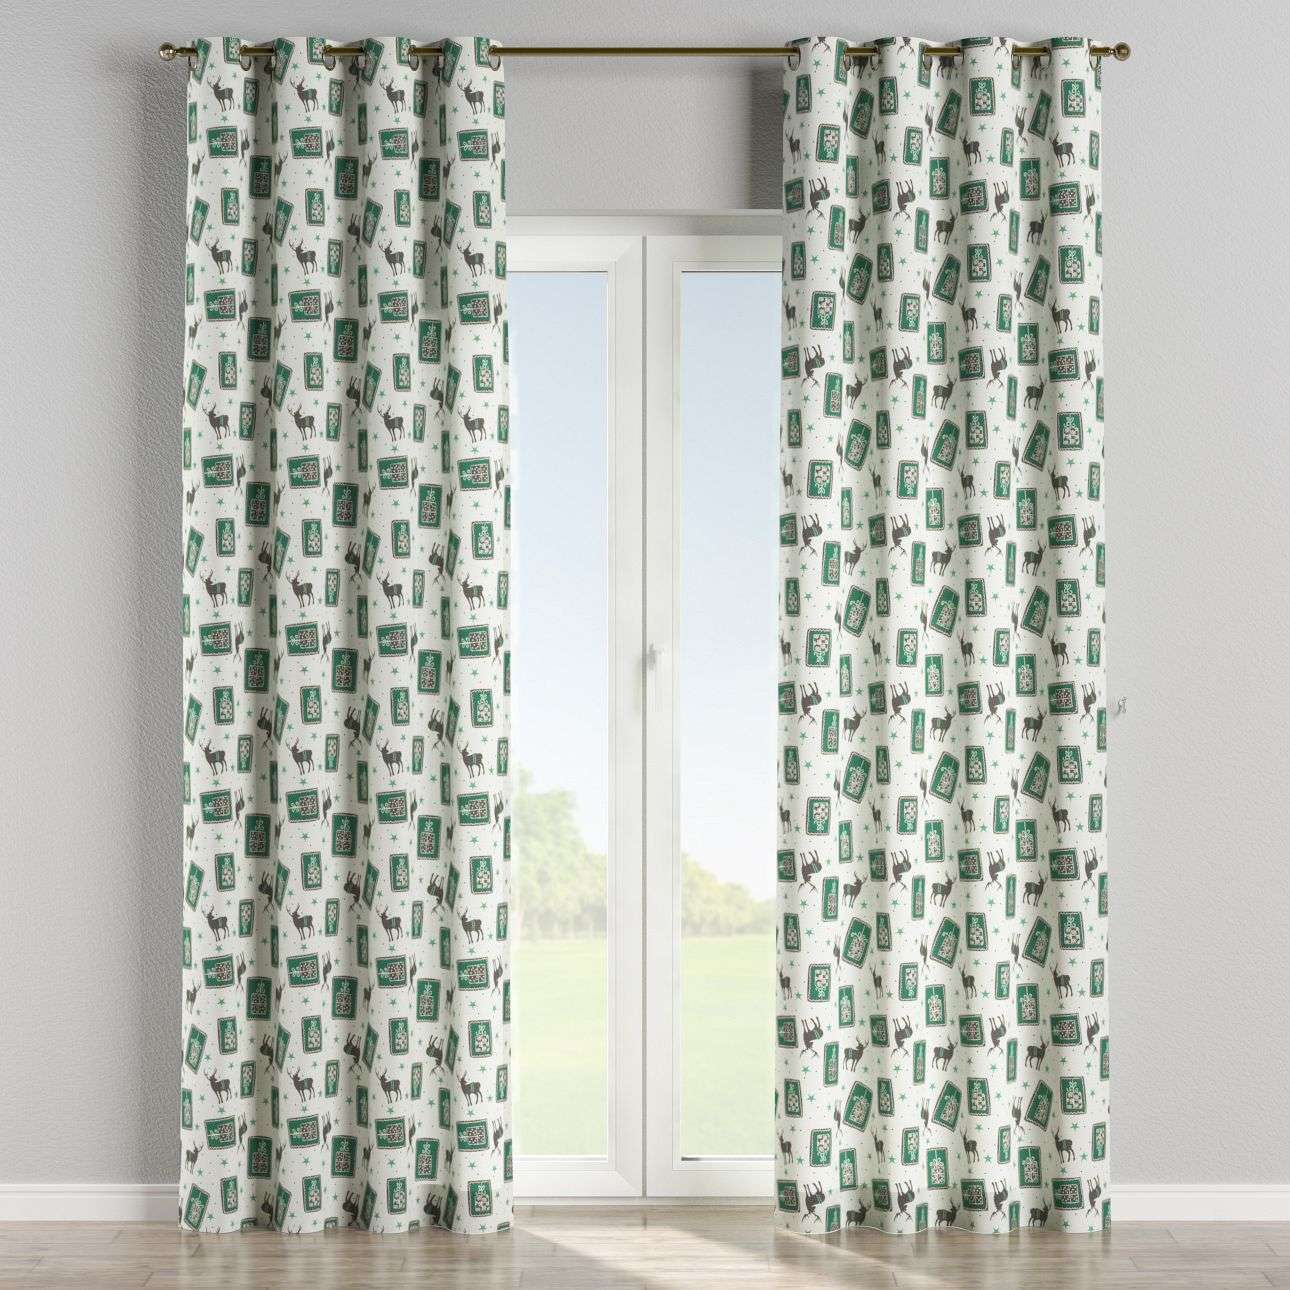 Eyelet curtains 130 x 260 cm (51 x 102 inch) in collection Nordic, fabric: 630-13